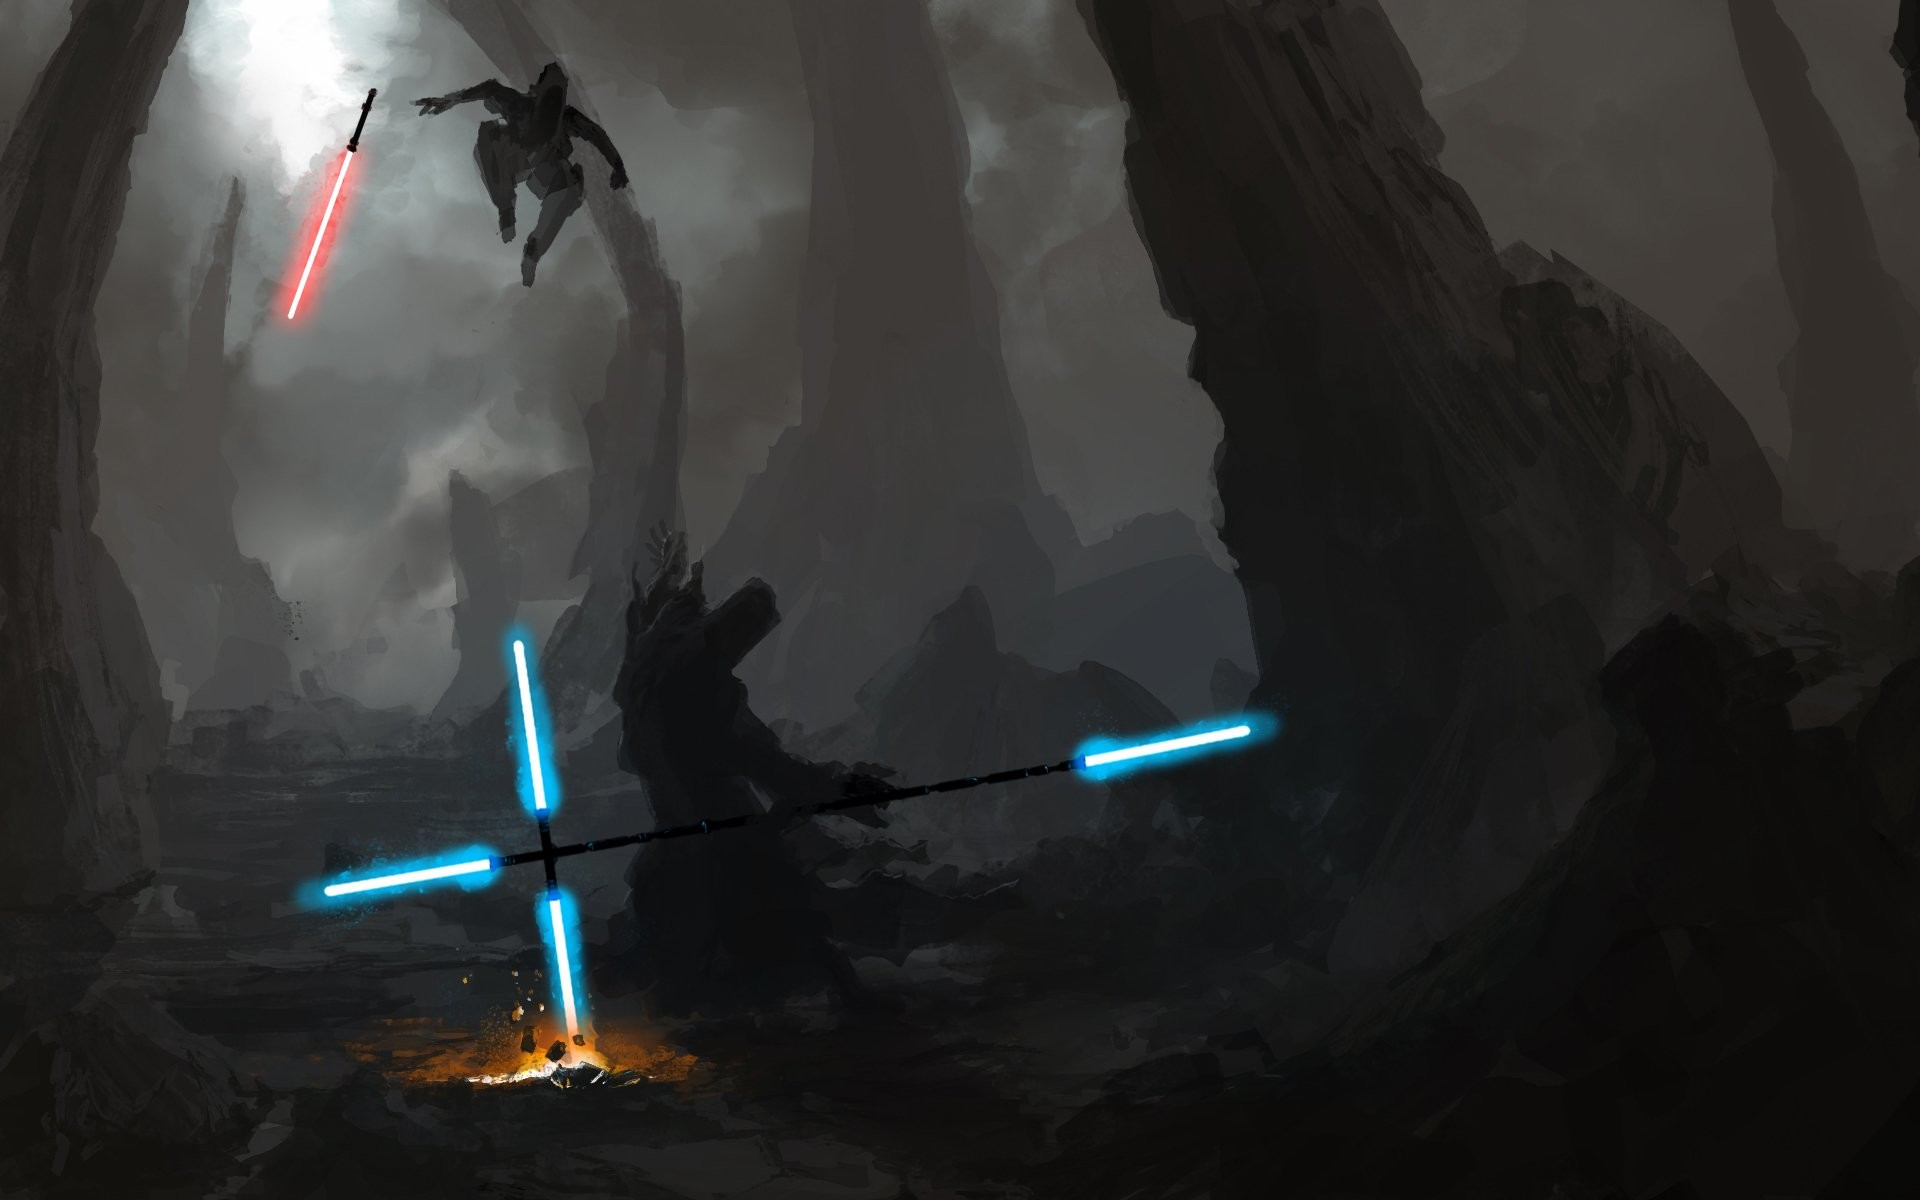 Artwork Duel Energy Jedi Lightsabers Sith Star Wars free iPhone or Android  Full HD wallpaper.